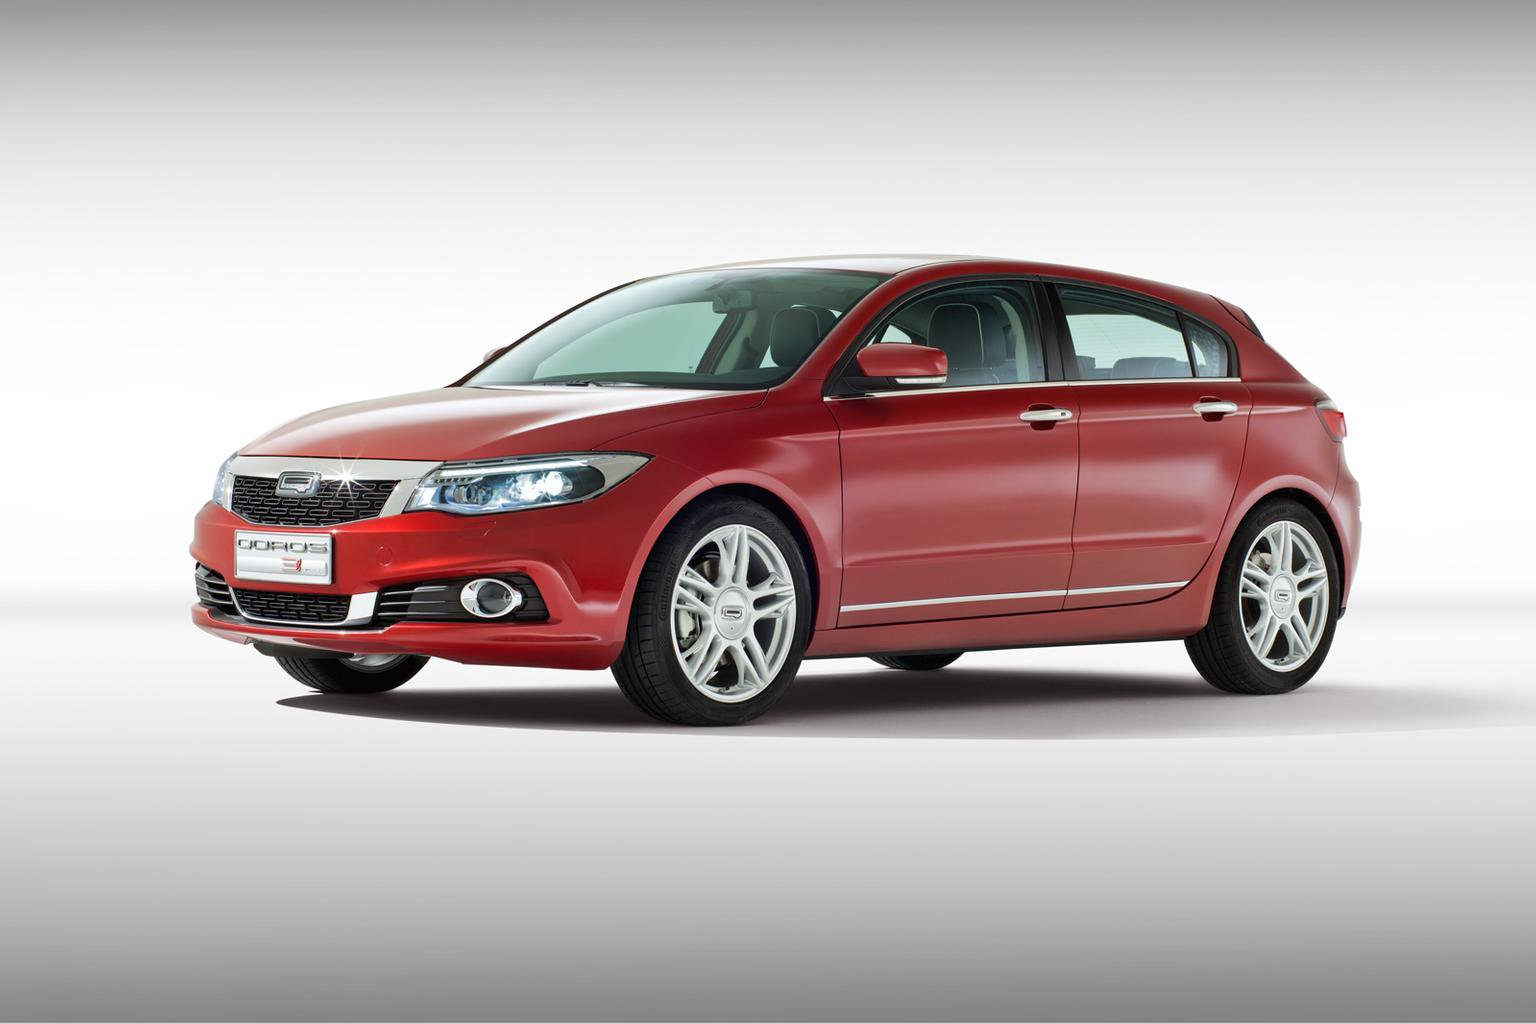 Qoros 3 hatchback appears at Geneva